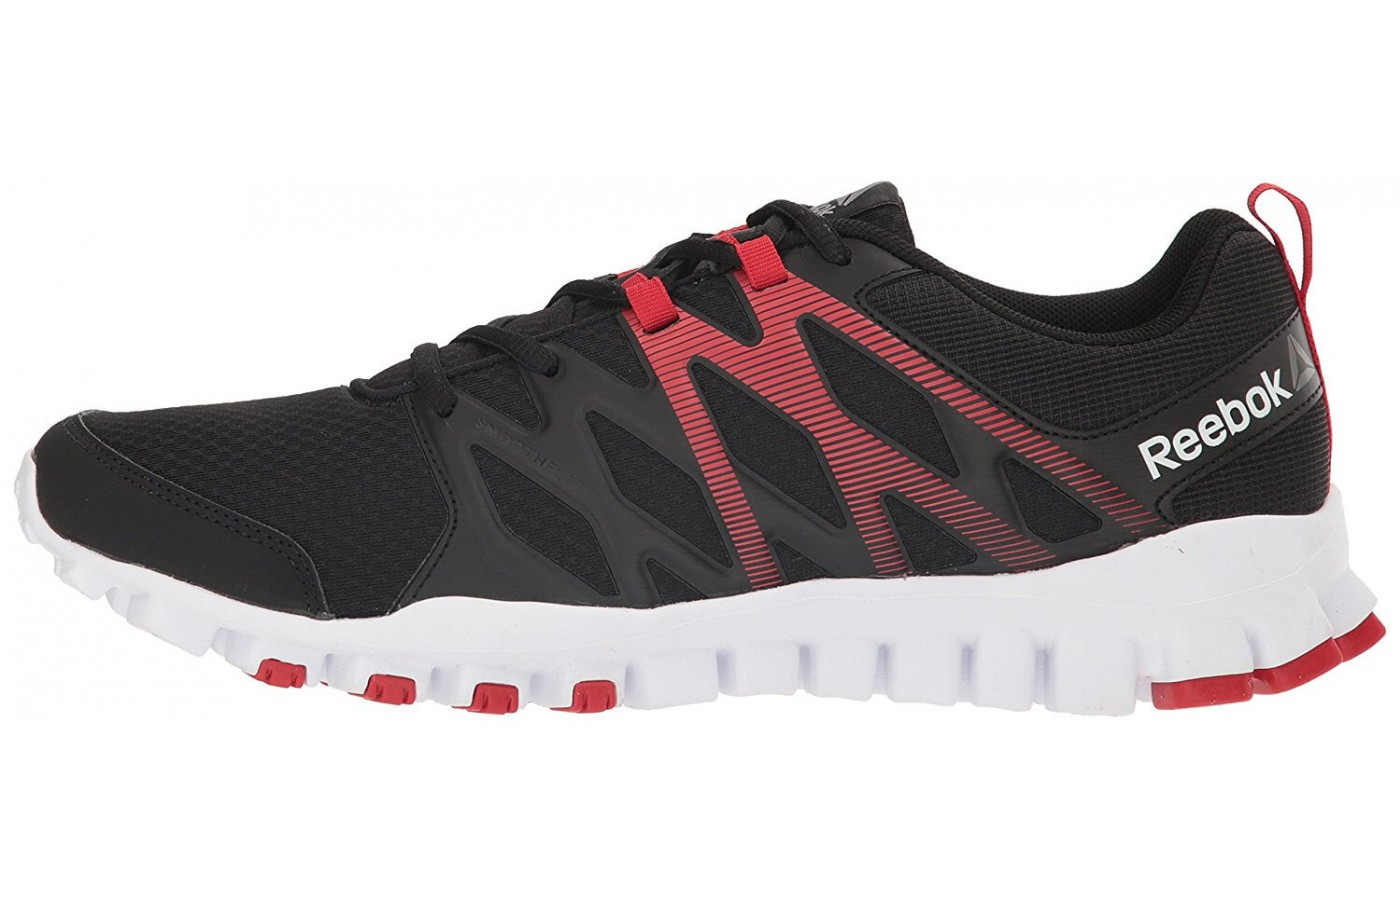 The Reebok RealFlex Train 4.0 features a 3DFuseFrame upper construction